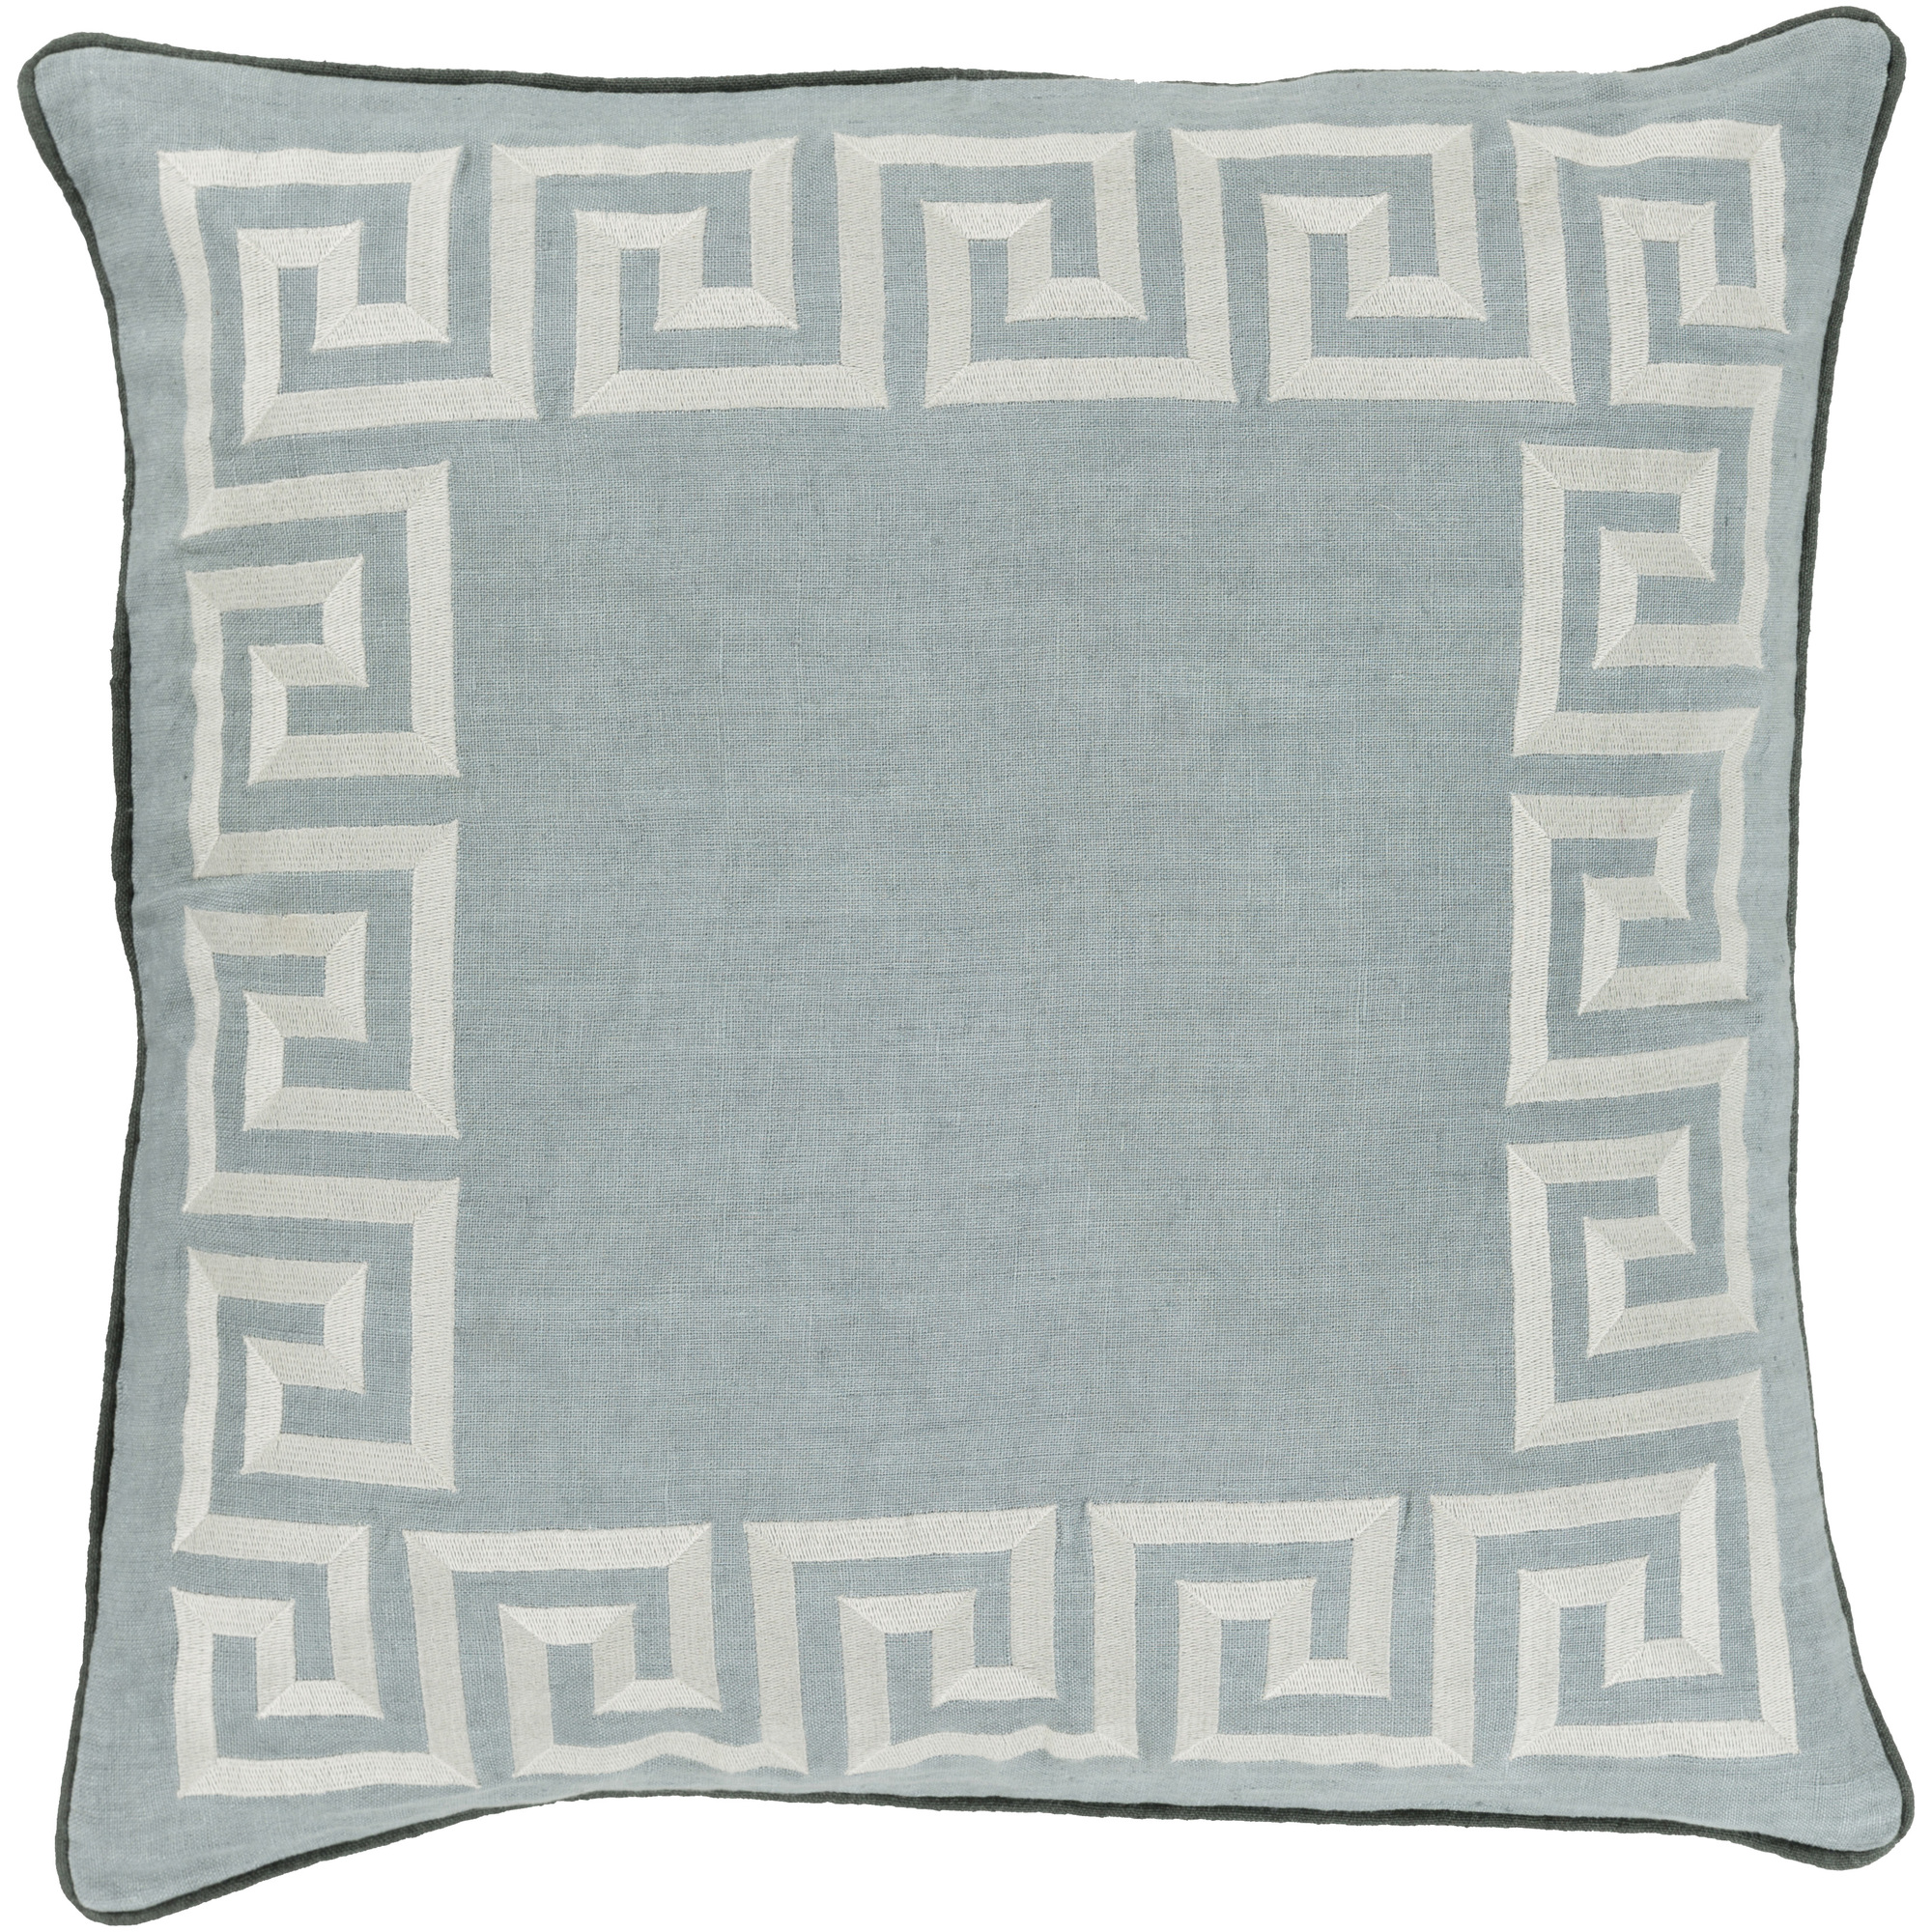 "Art of Knot Cesena 18"" x 18"" Pillow Cover"